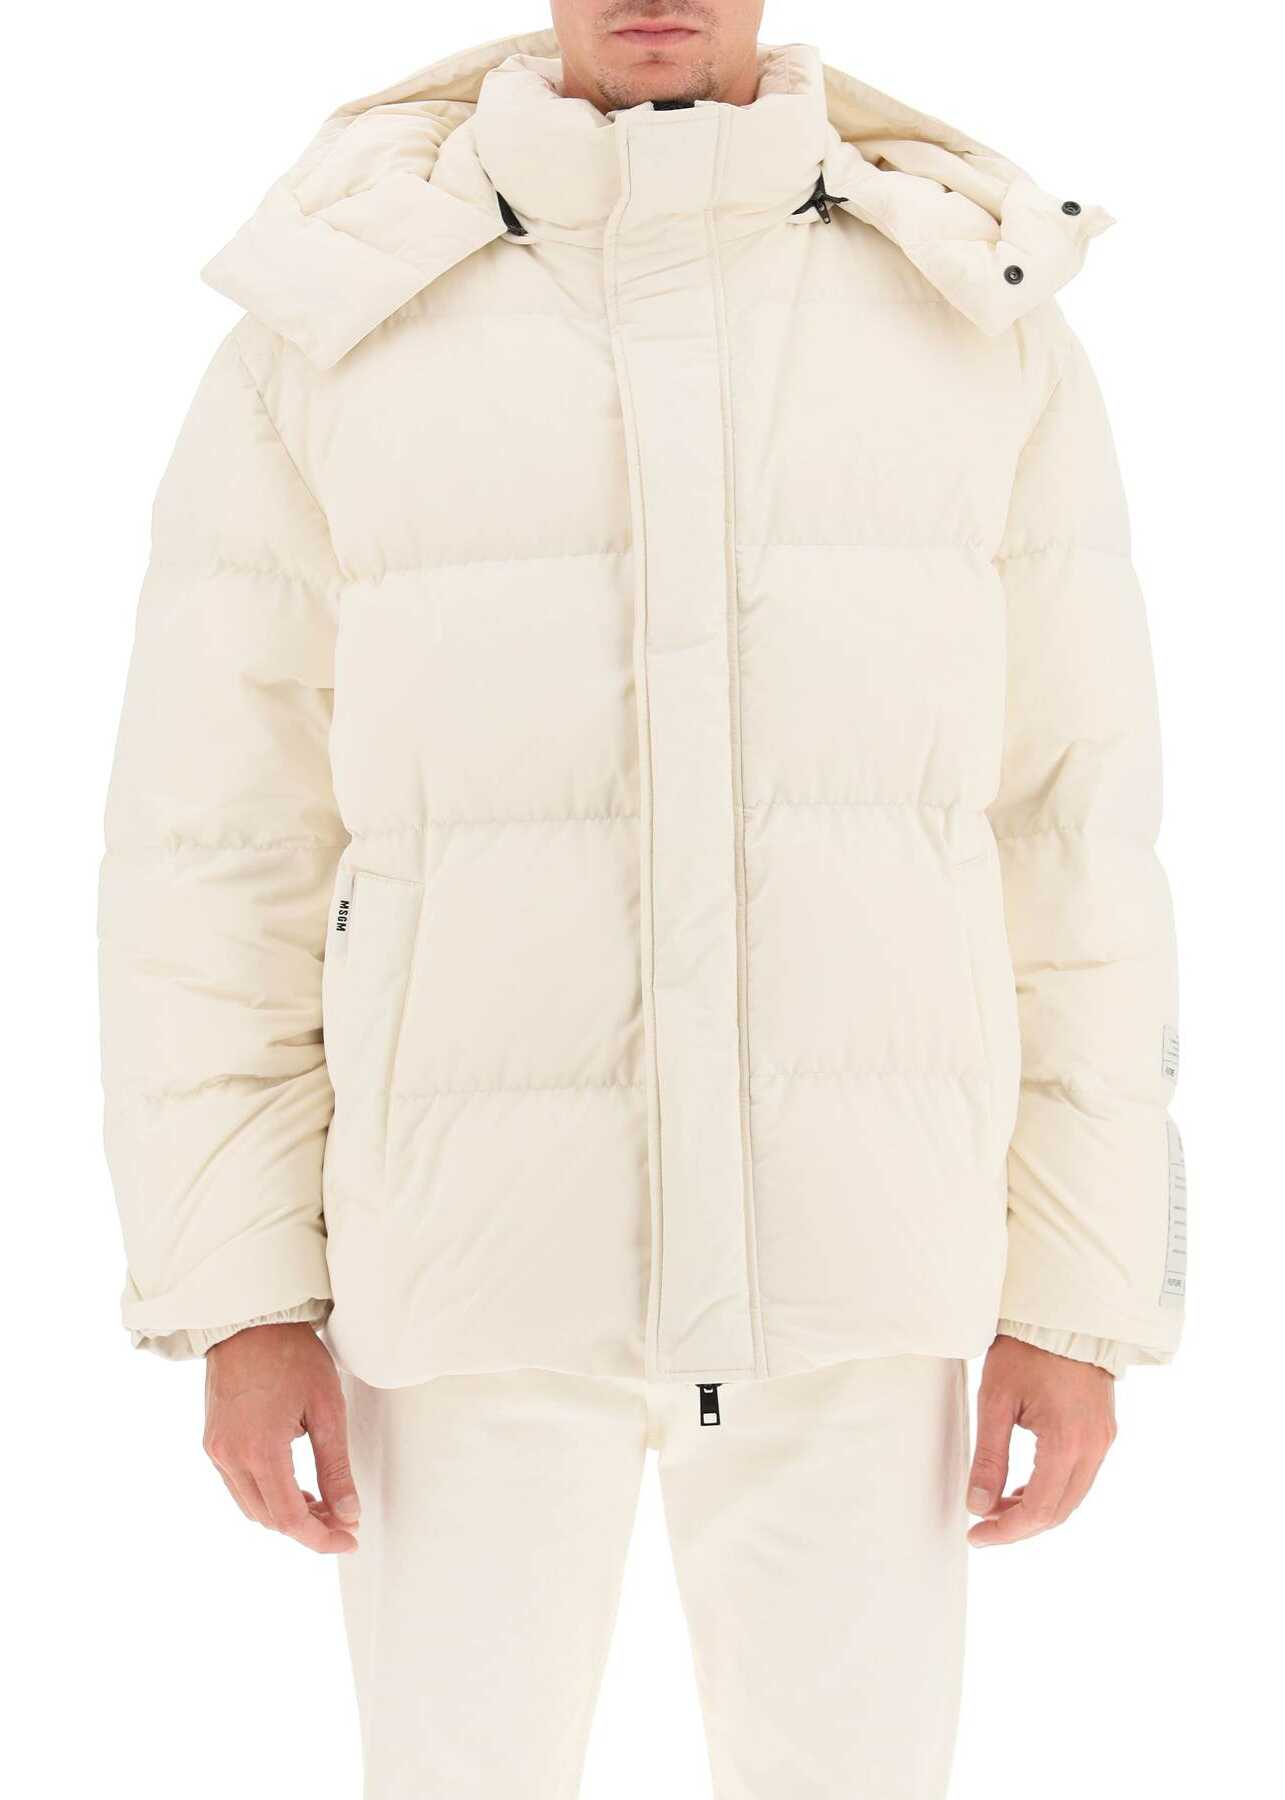 MSGM Fantastic Green Oversized Down Jacket 3140MH191X 217704 OFF WHITE image0